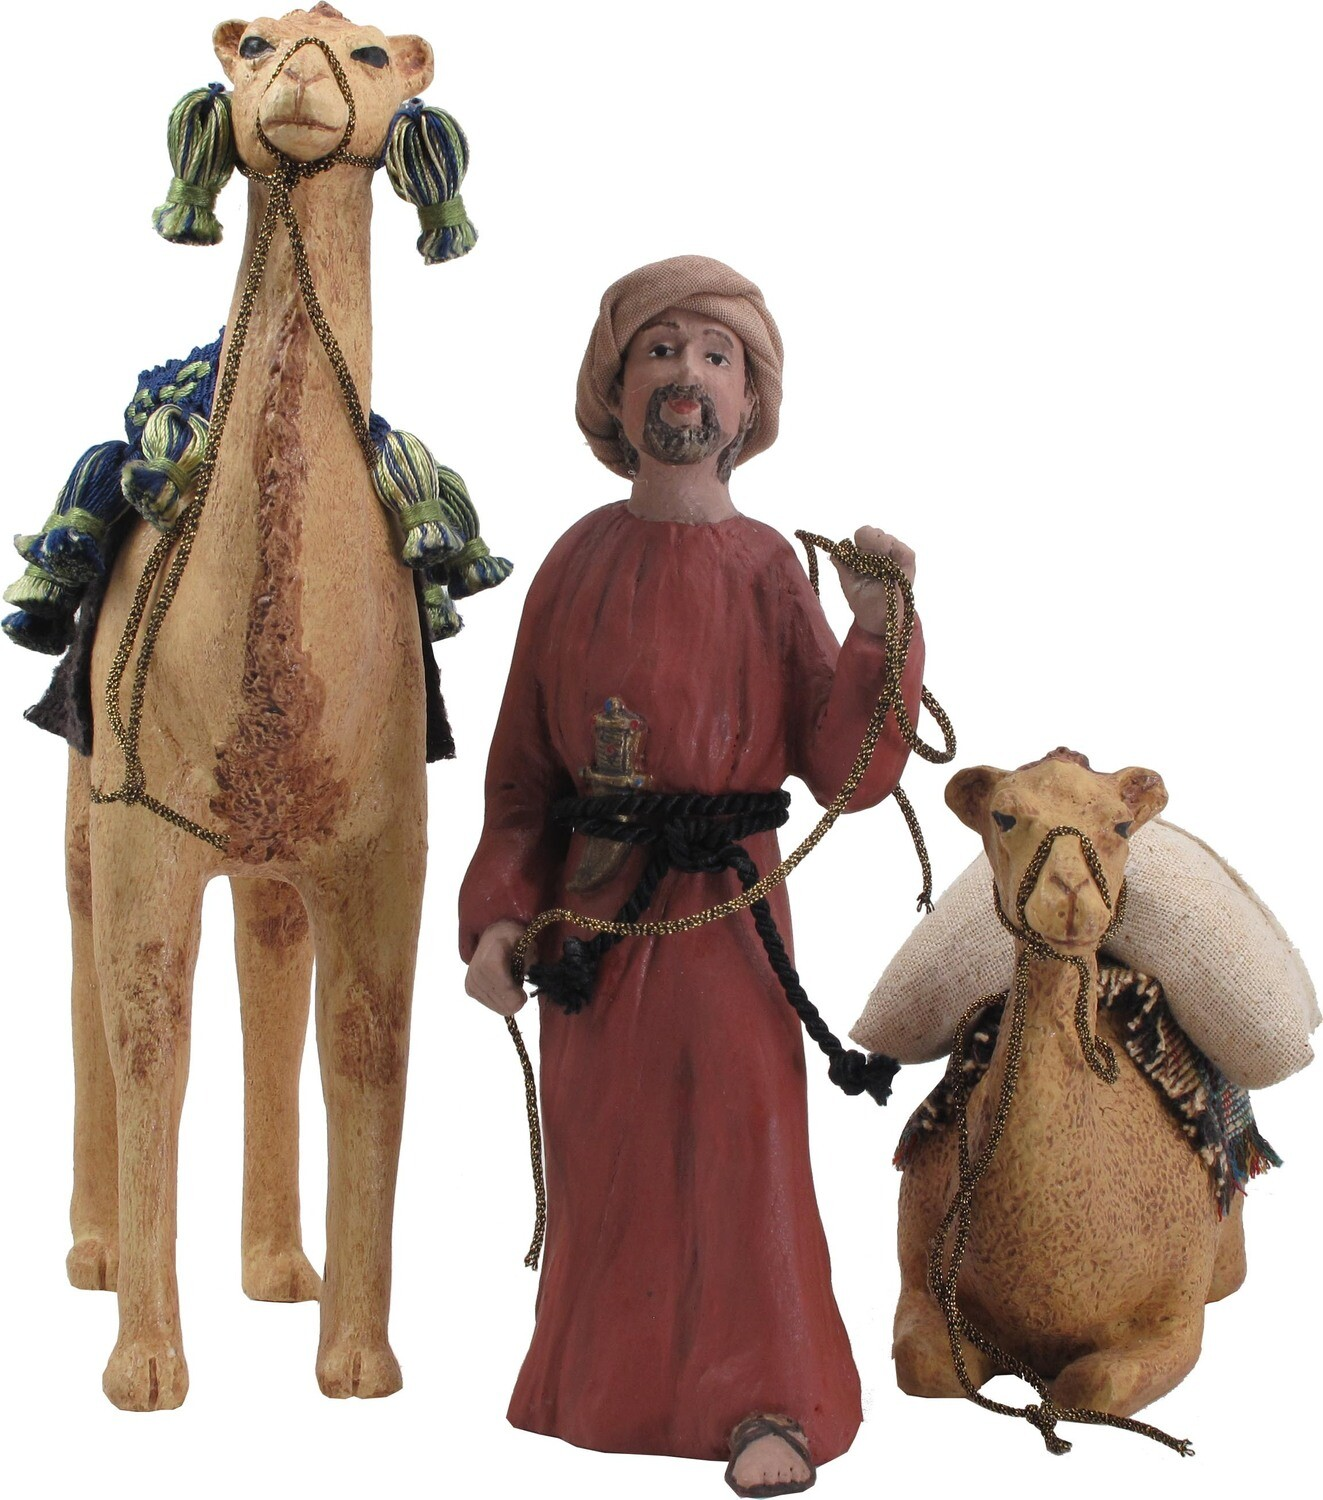 Camel Set - Your choice of Camel and Musad, the Camel Driver